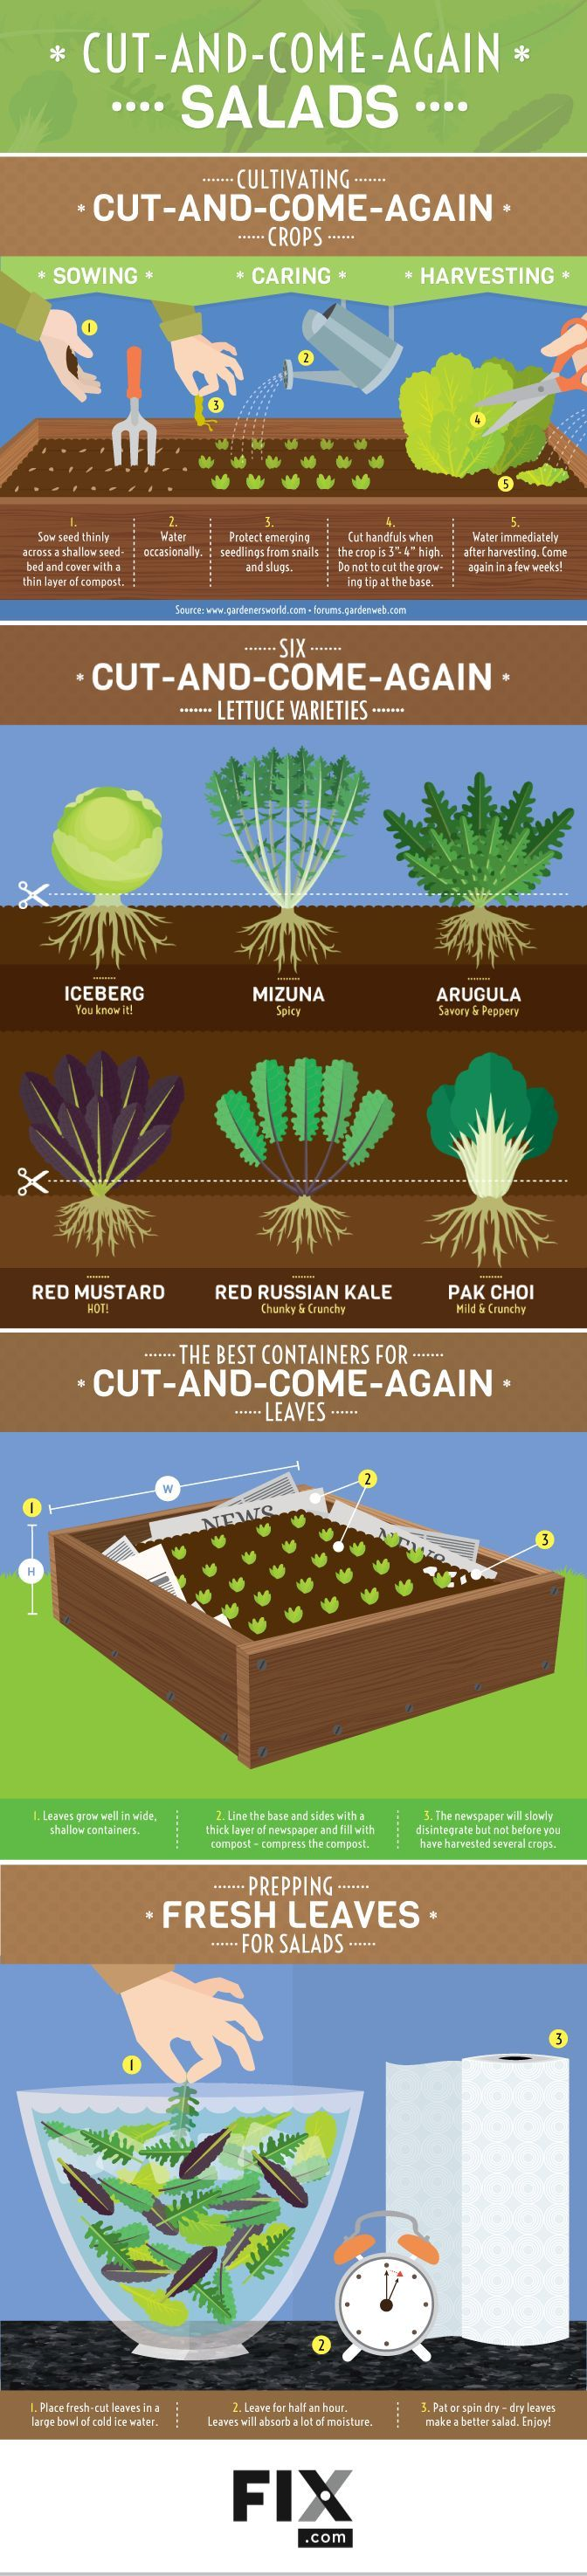 Cut-and-Come-Again Salads #infographic #Gardening